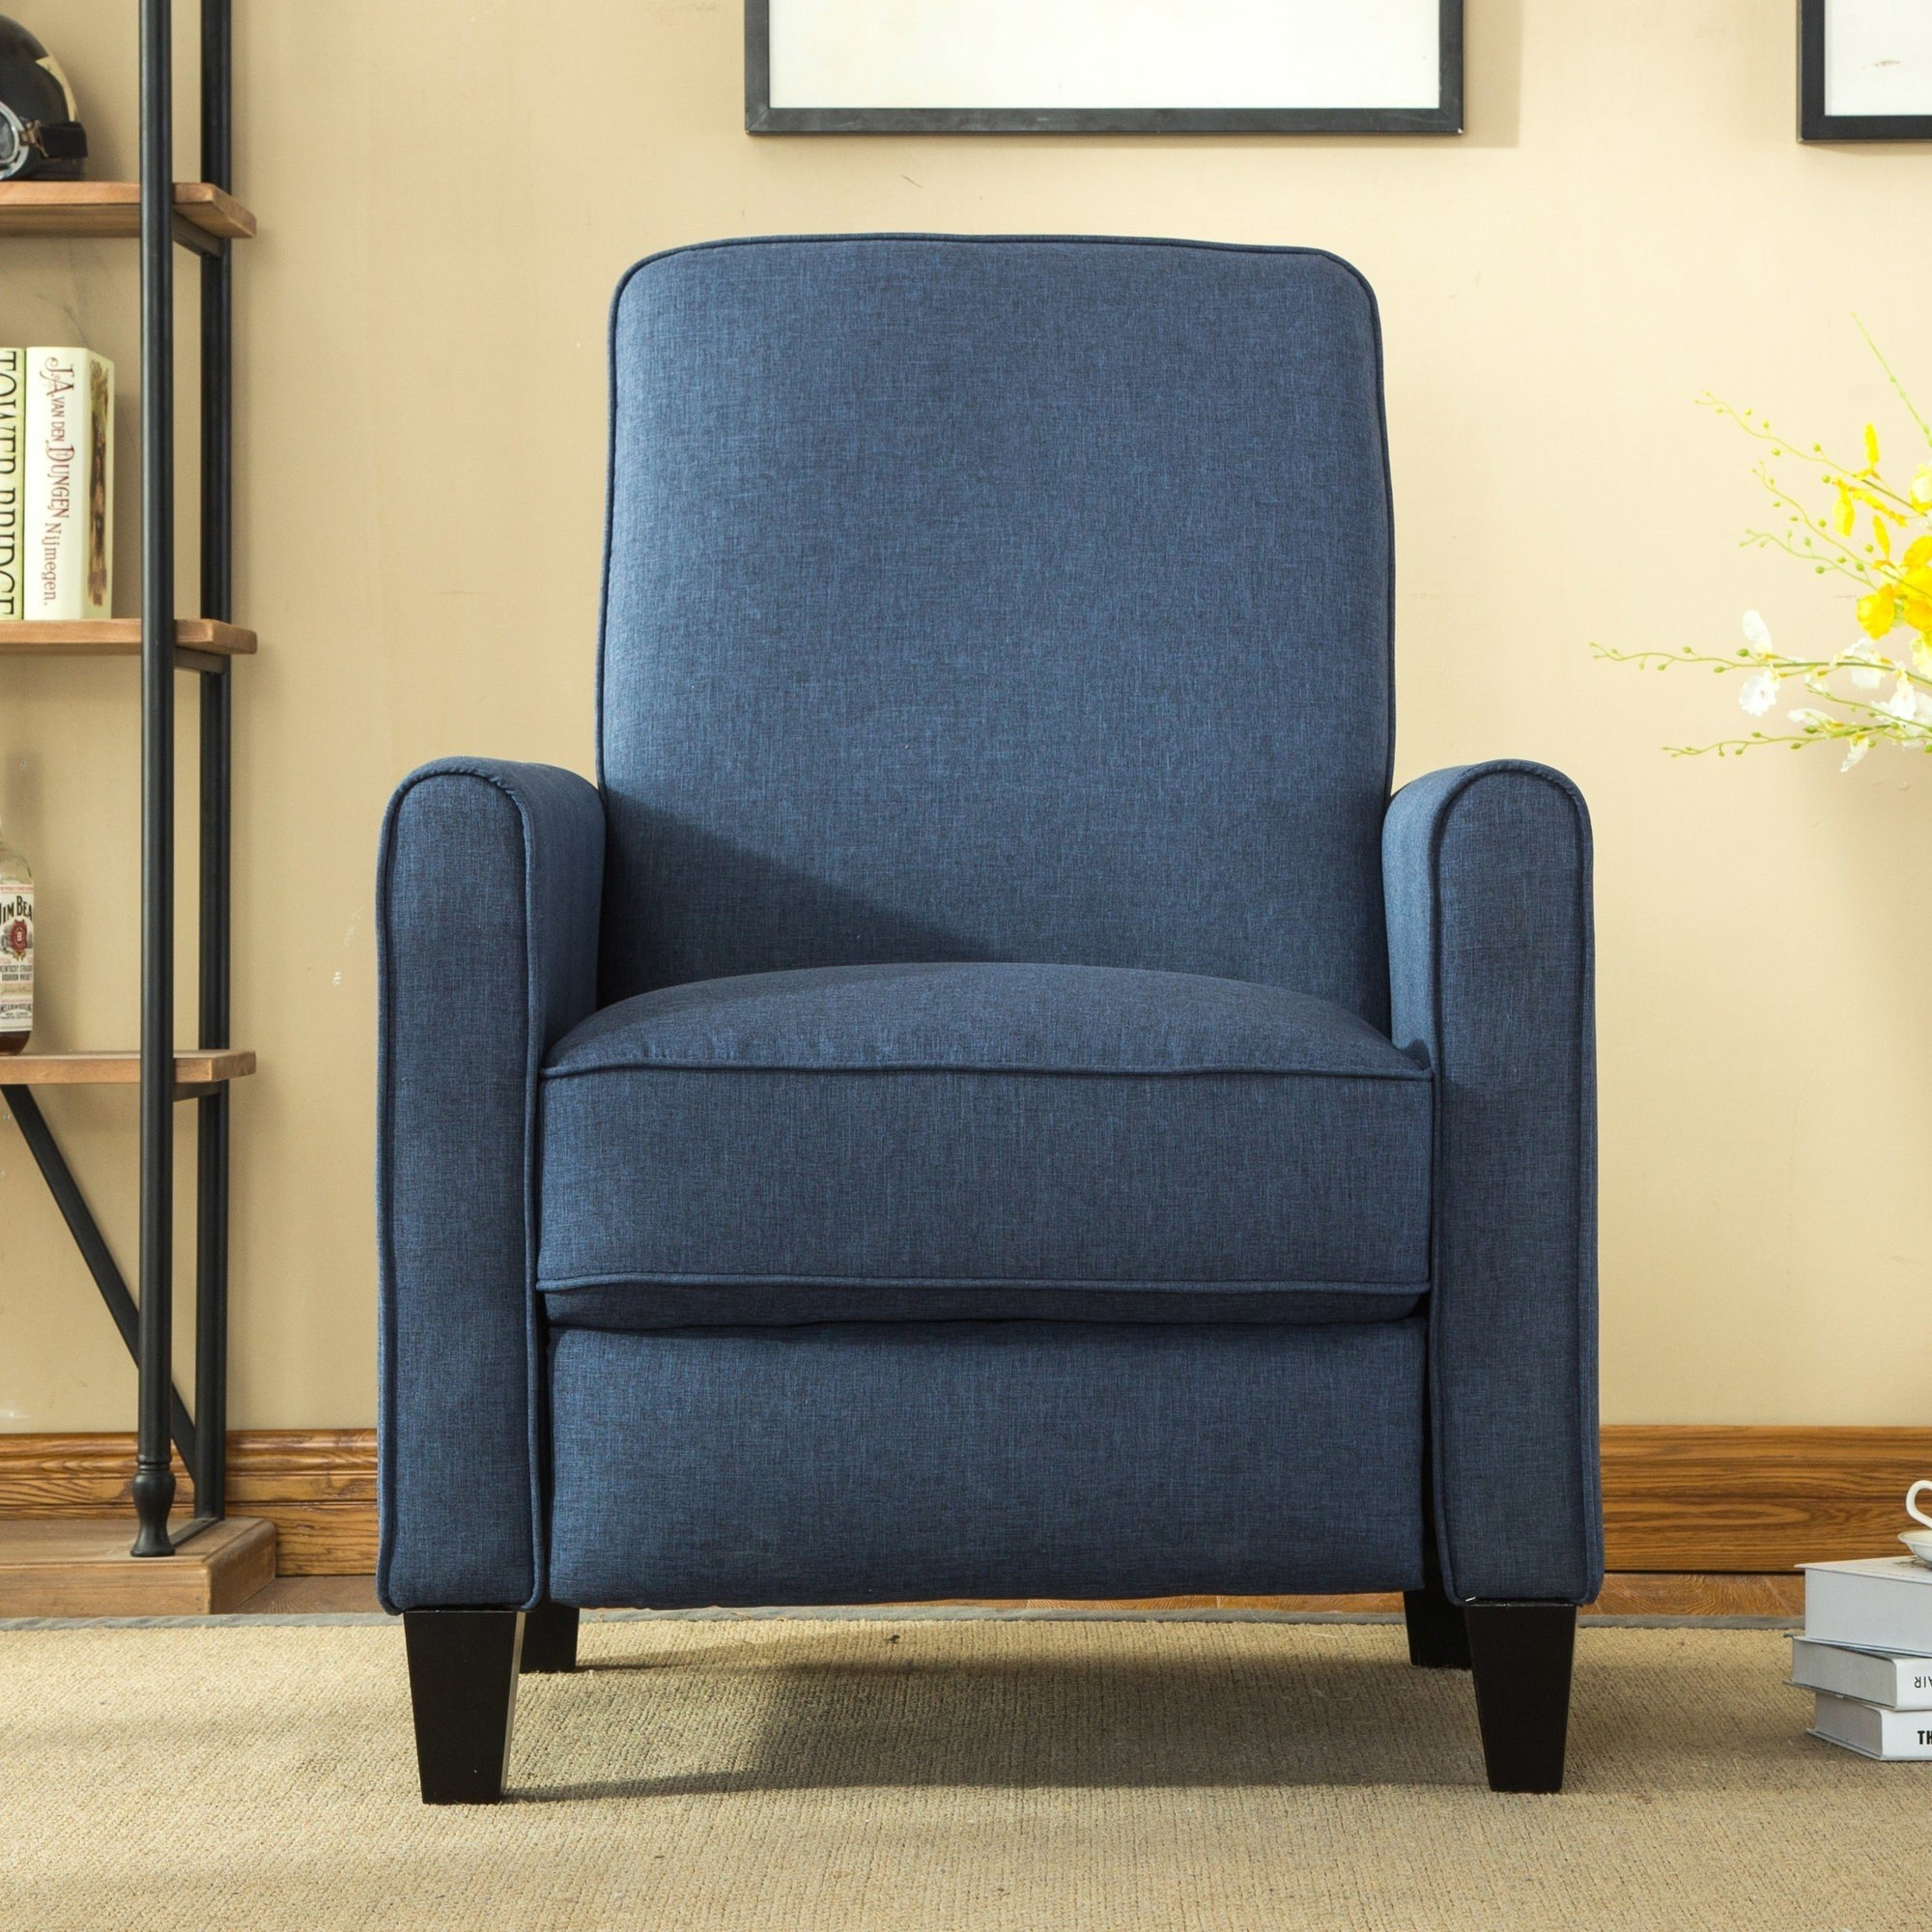 Best Rated Small Recliners Recliners For Small Spaces Up To 70 Off Visual Hunt